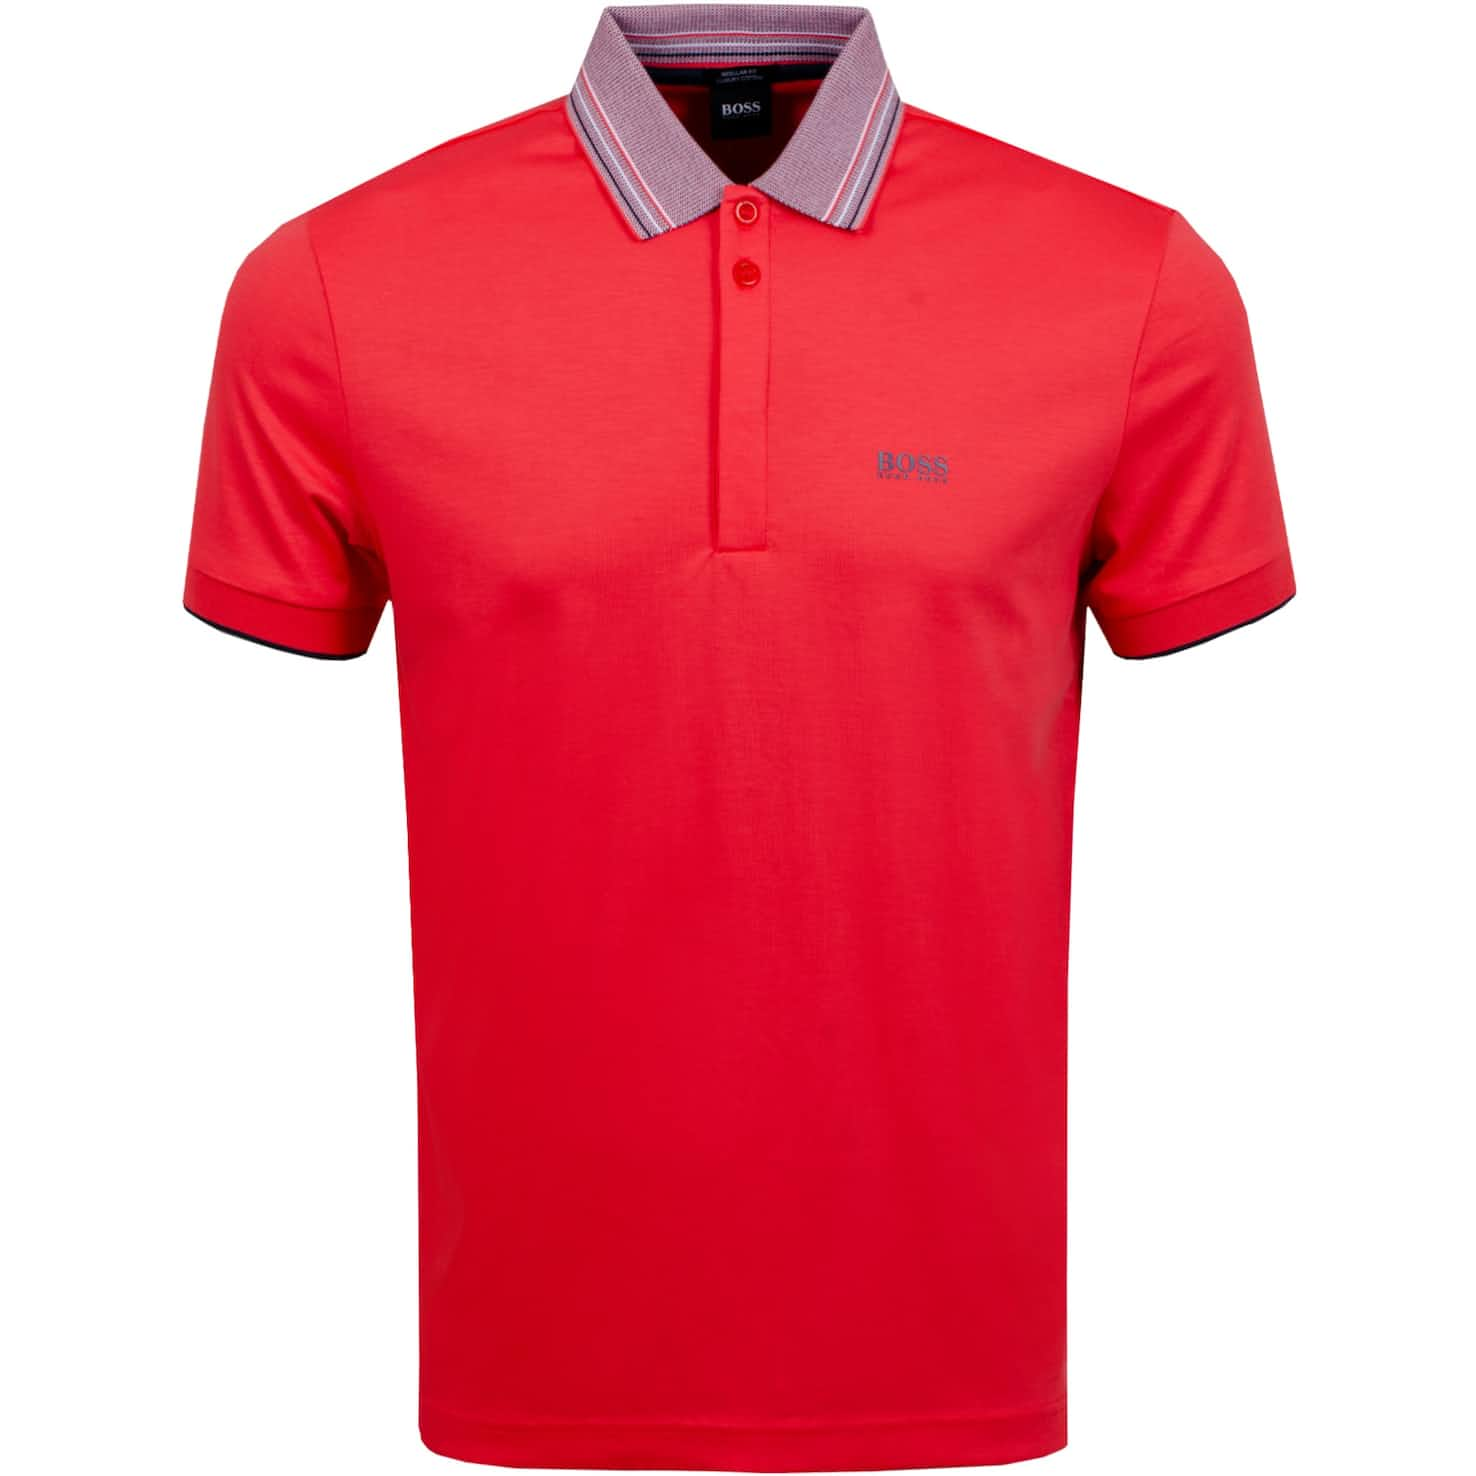 Paddy 1 Bright Red - SS20